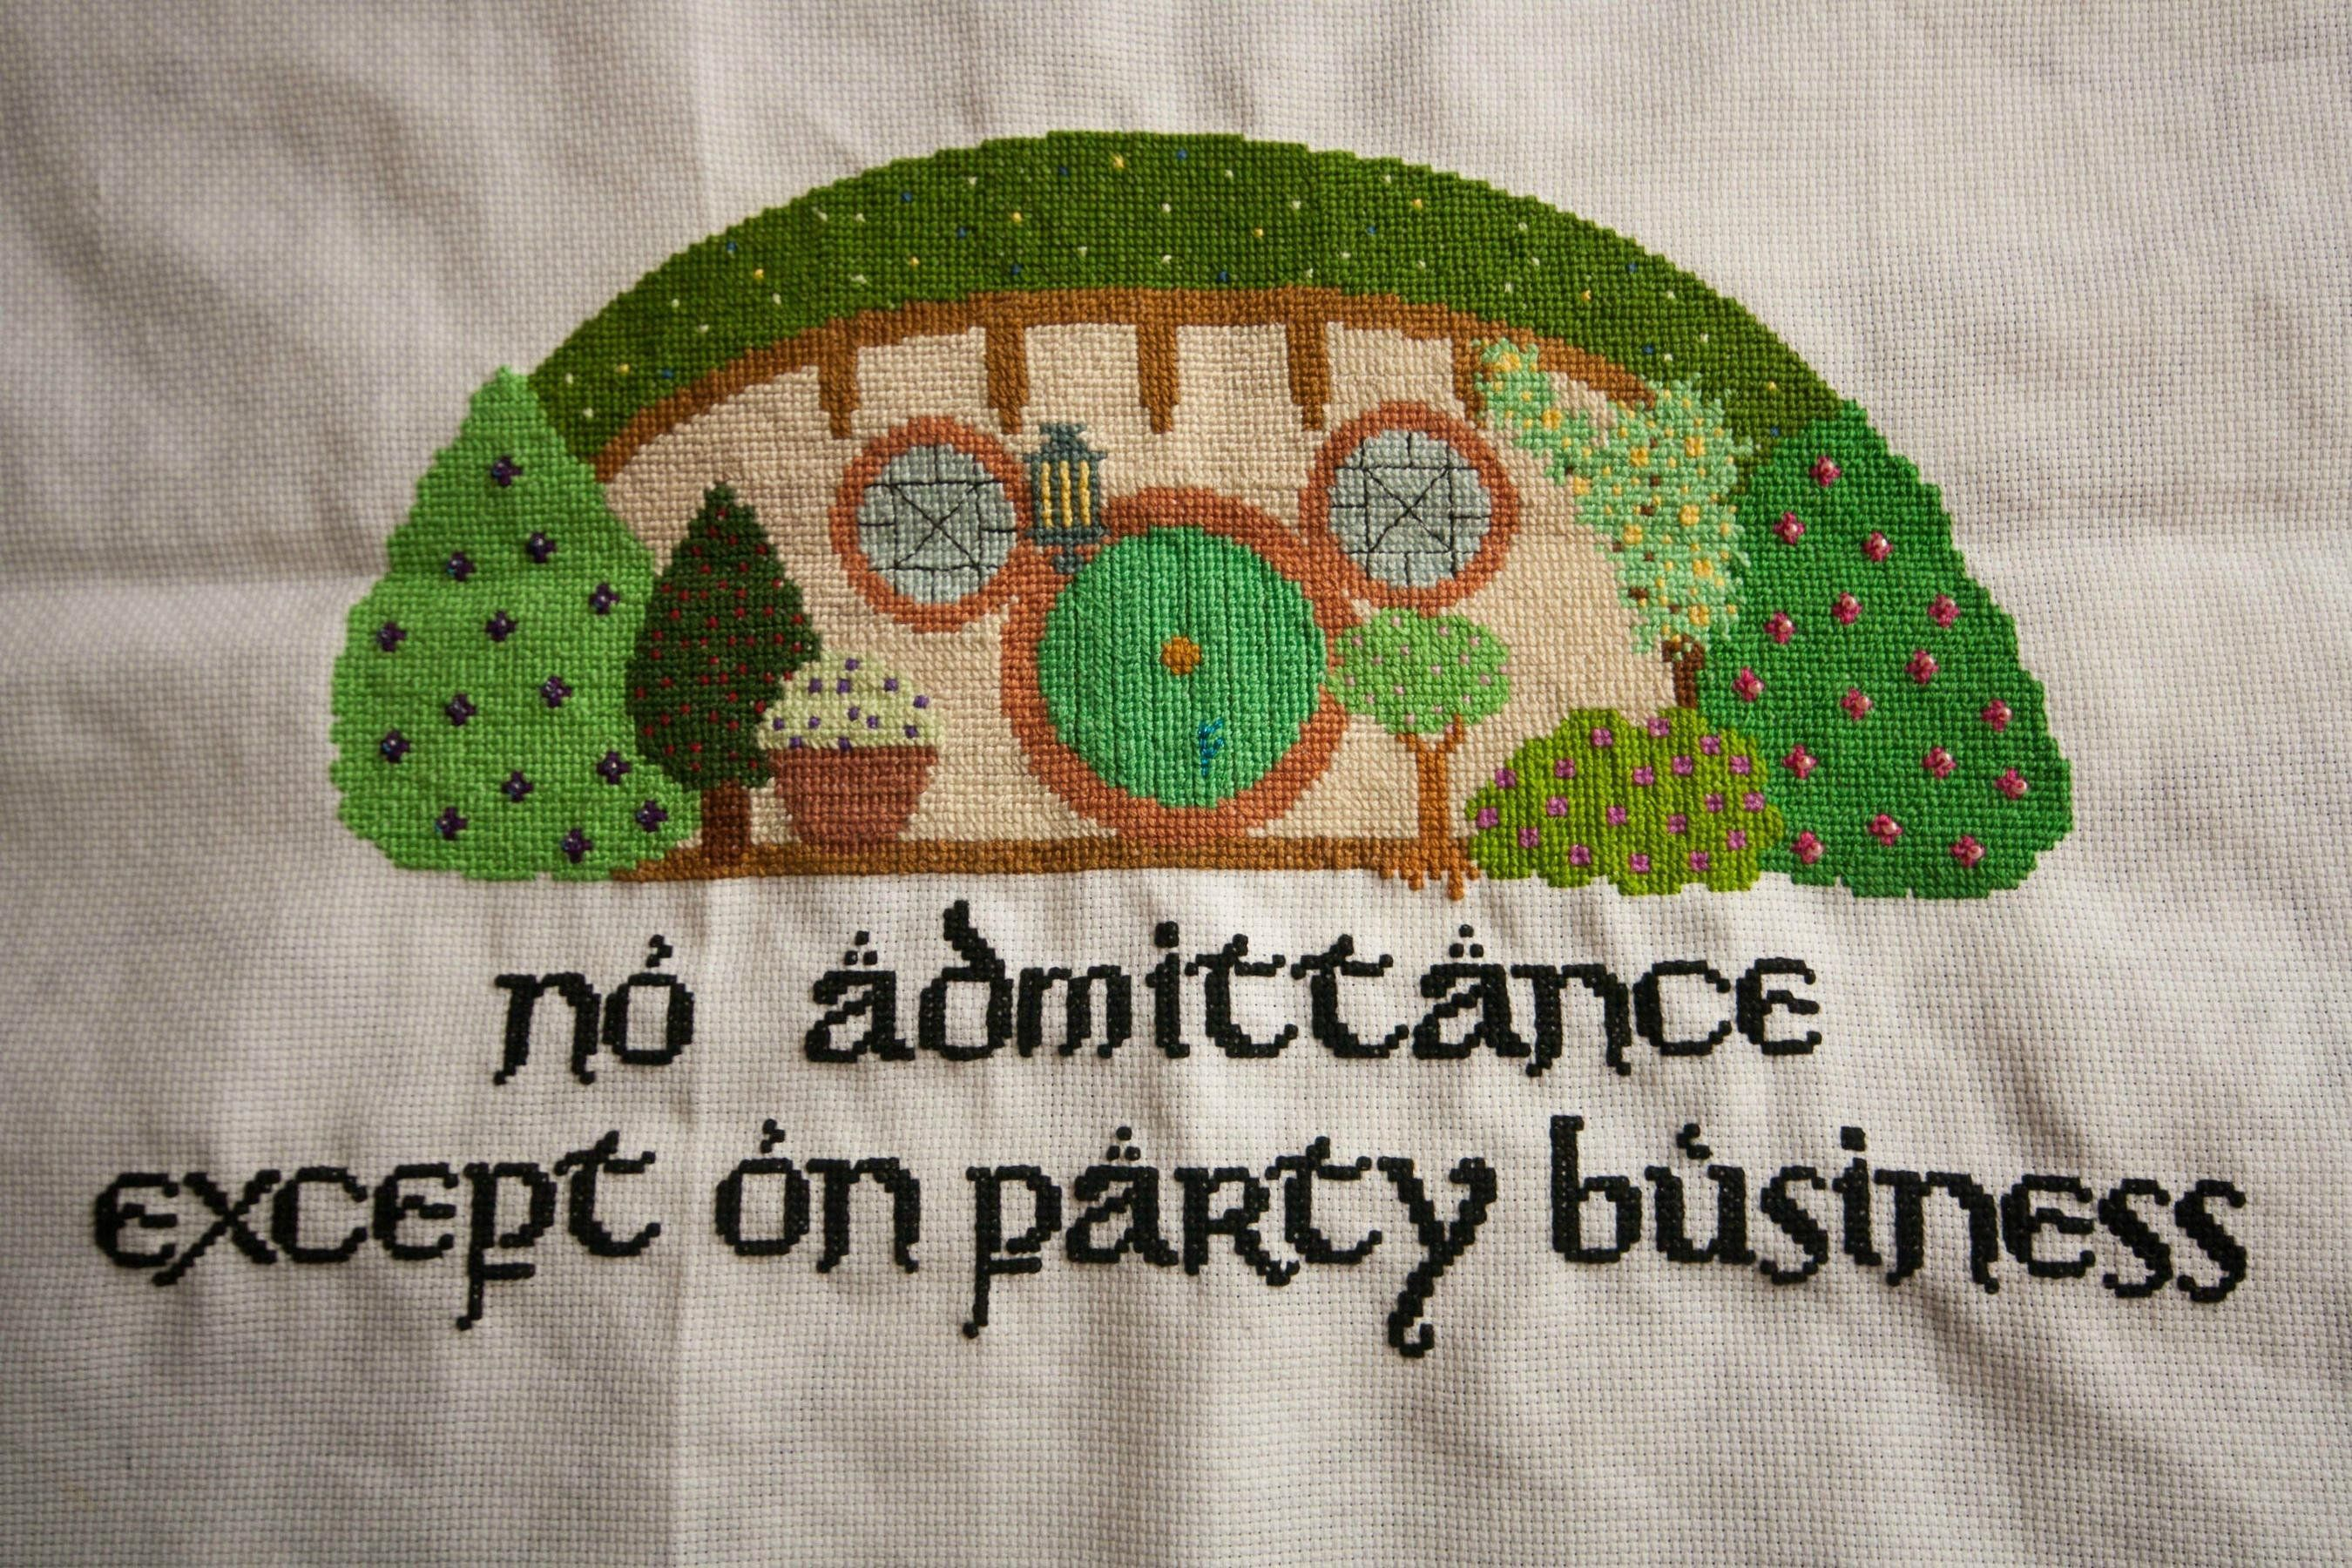 25 geeky cross-stitches! I need to learn to cross-stitch